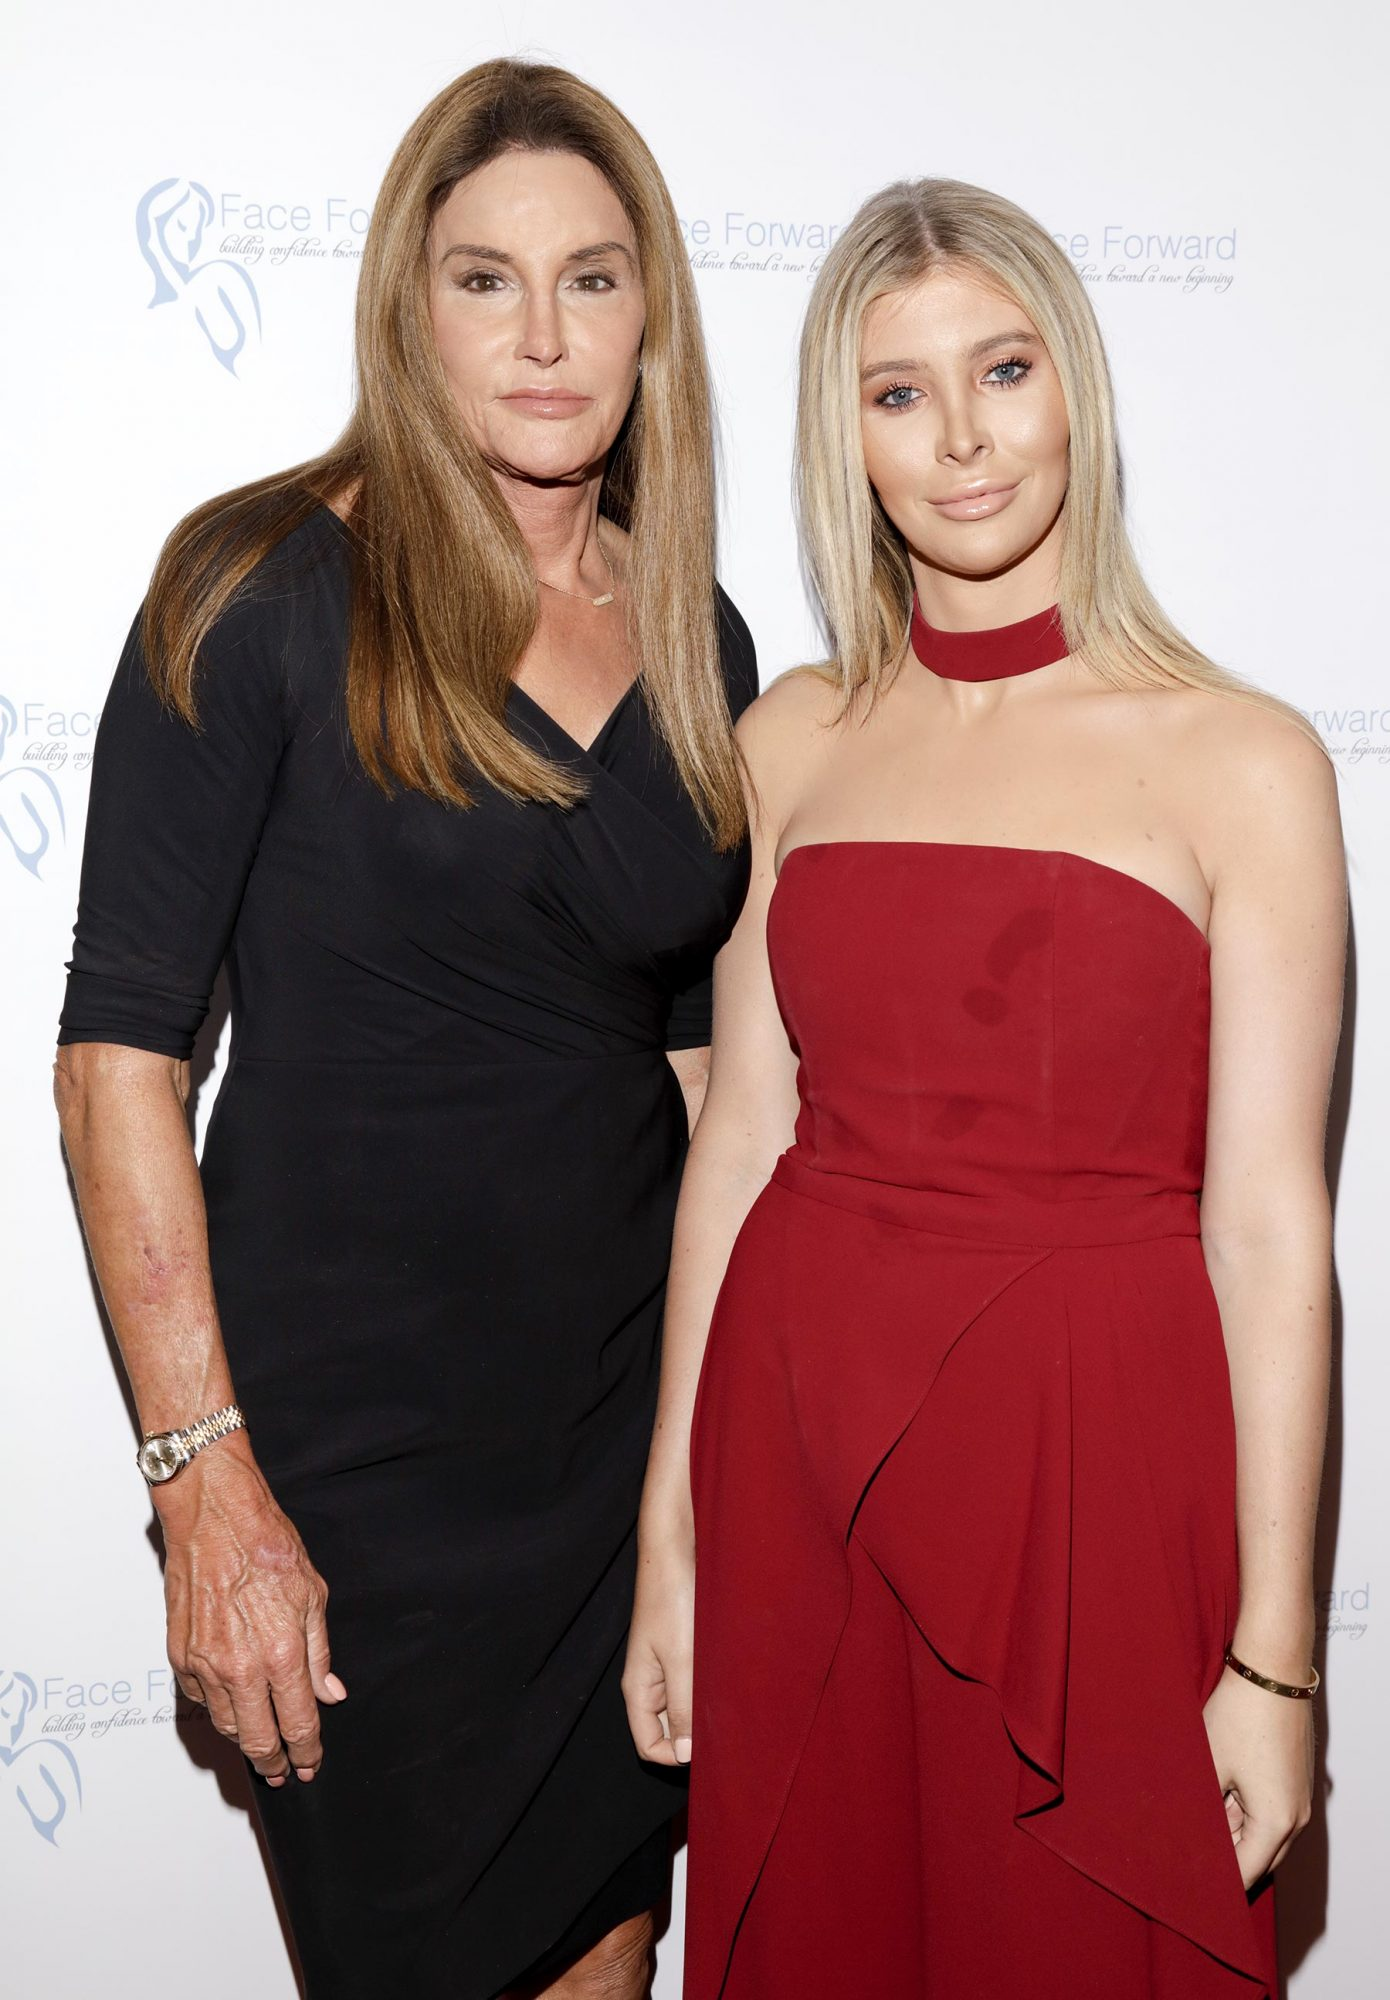 Caitlyn Jenner and Sophia Hutchins CR: Rony Armas